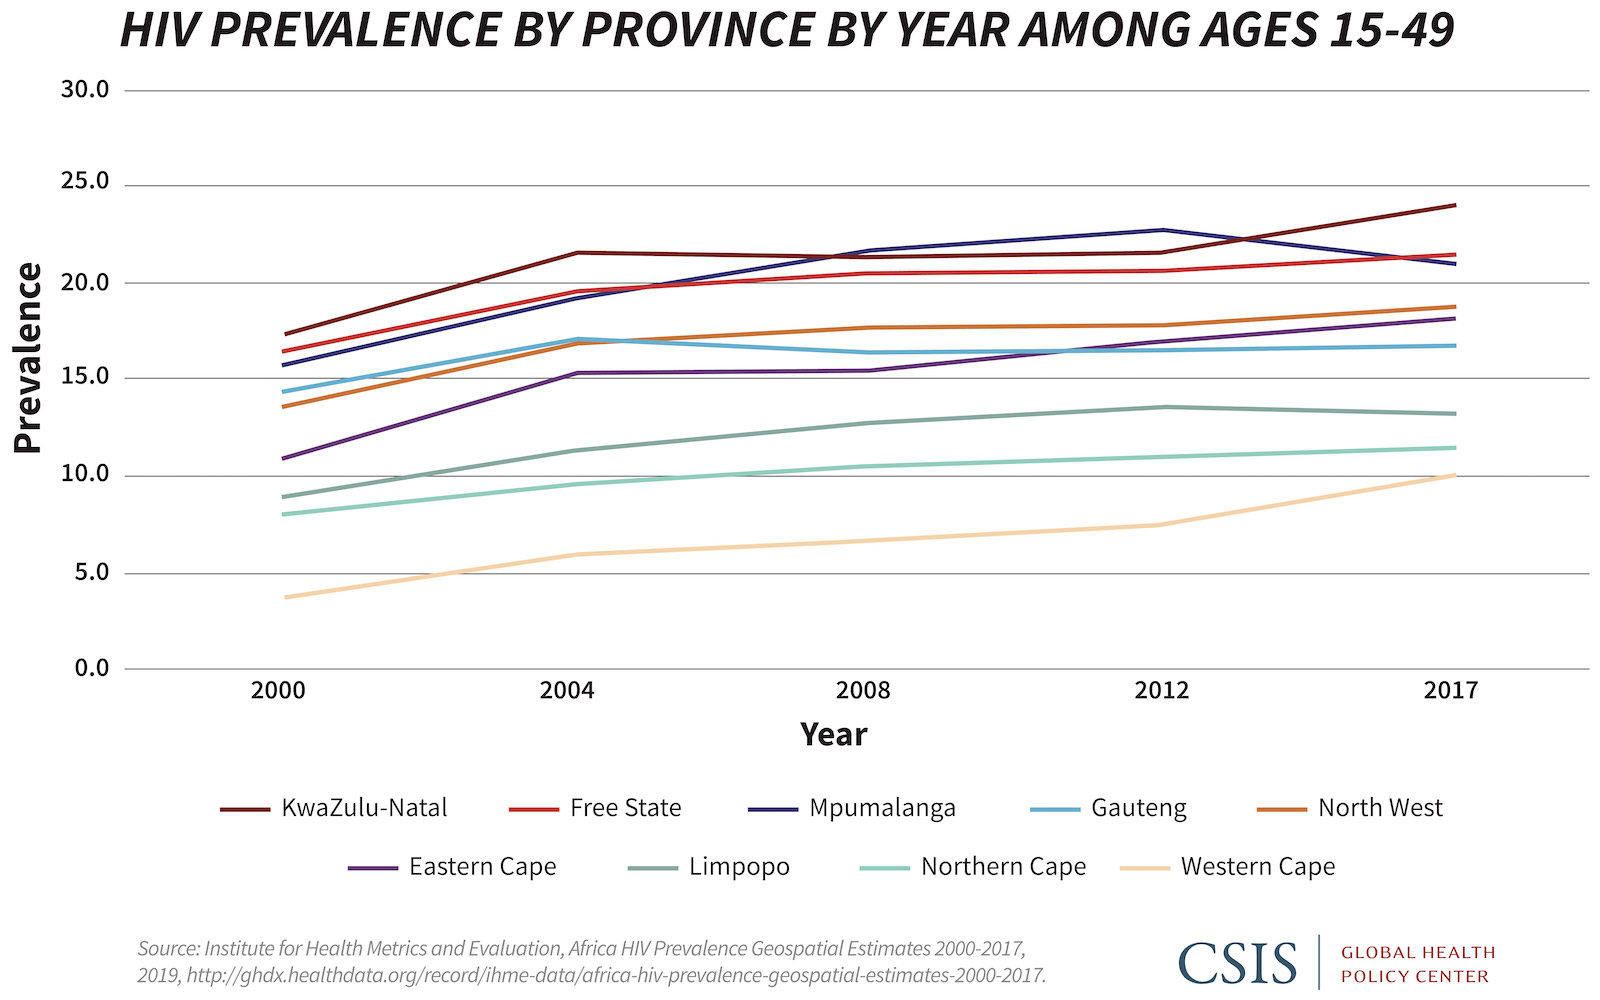 Line graph showing HIV prevalence by province by year among ages 15-49